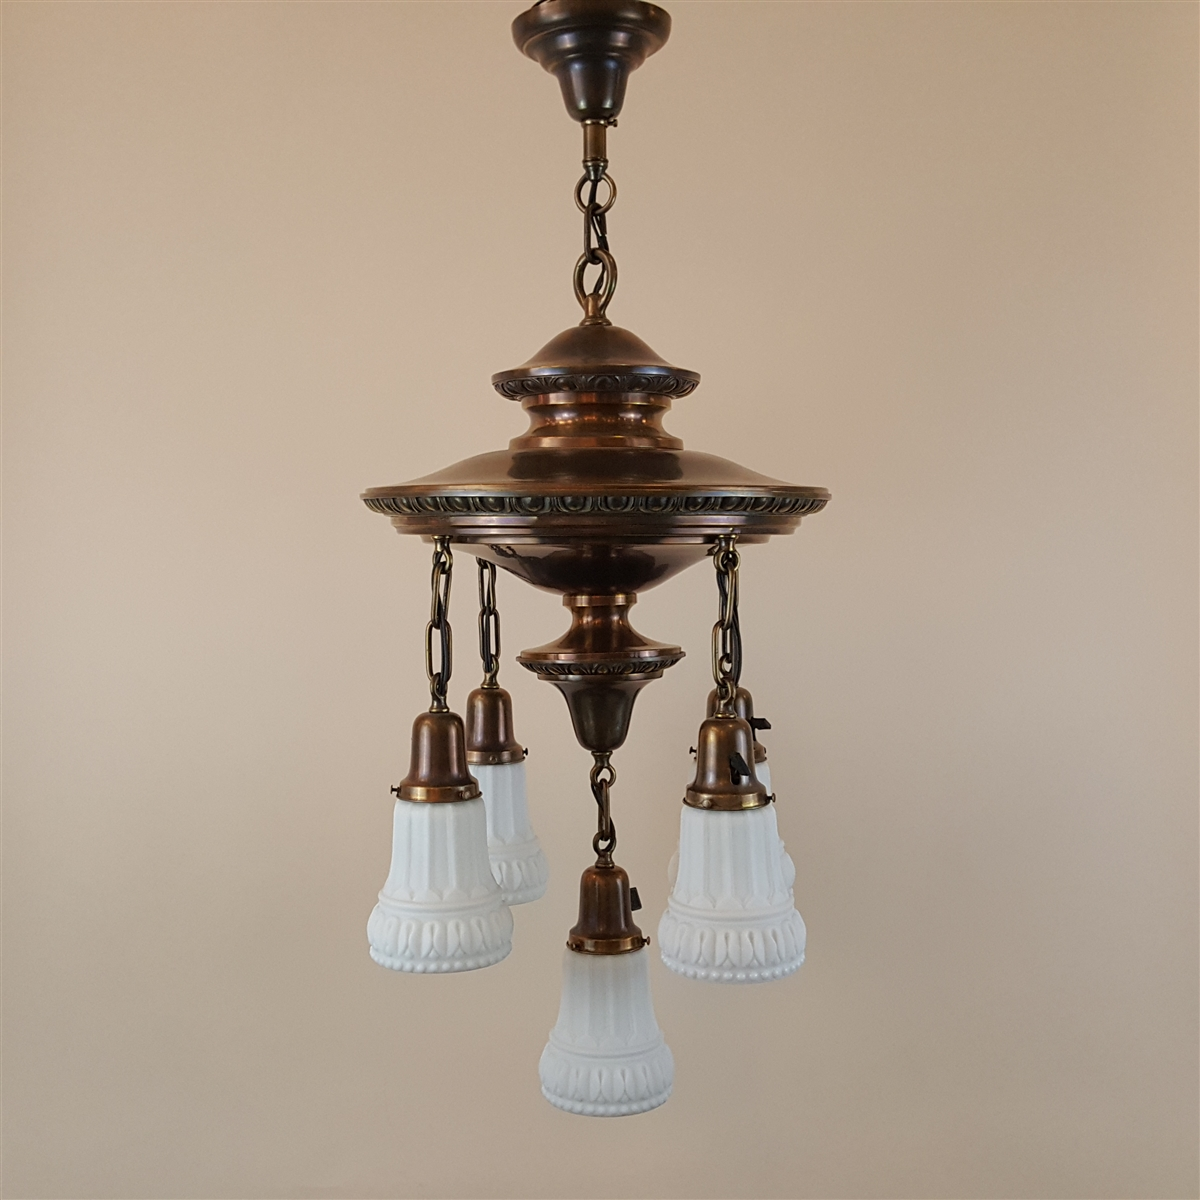 Ornate Two Tier Five Light Ceiling